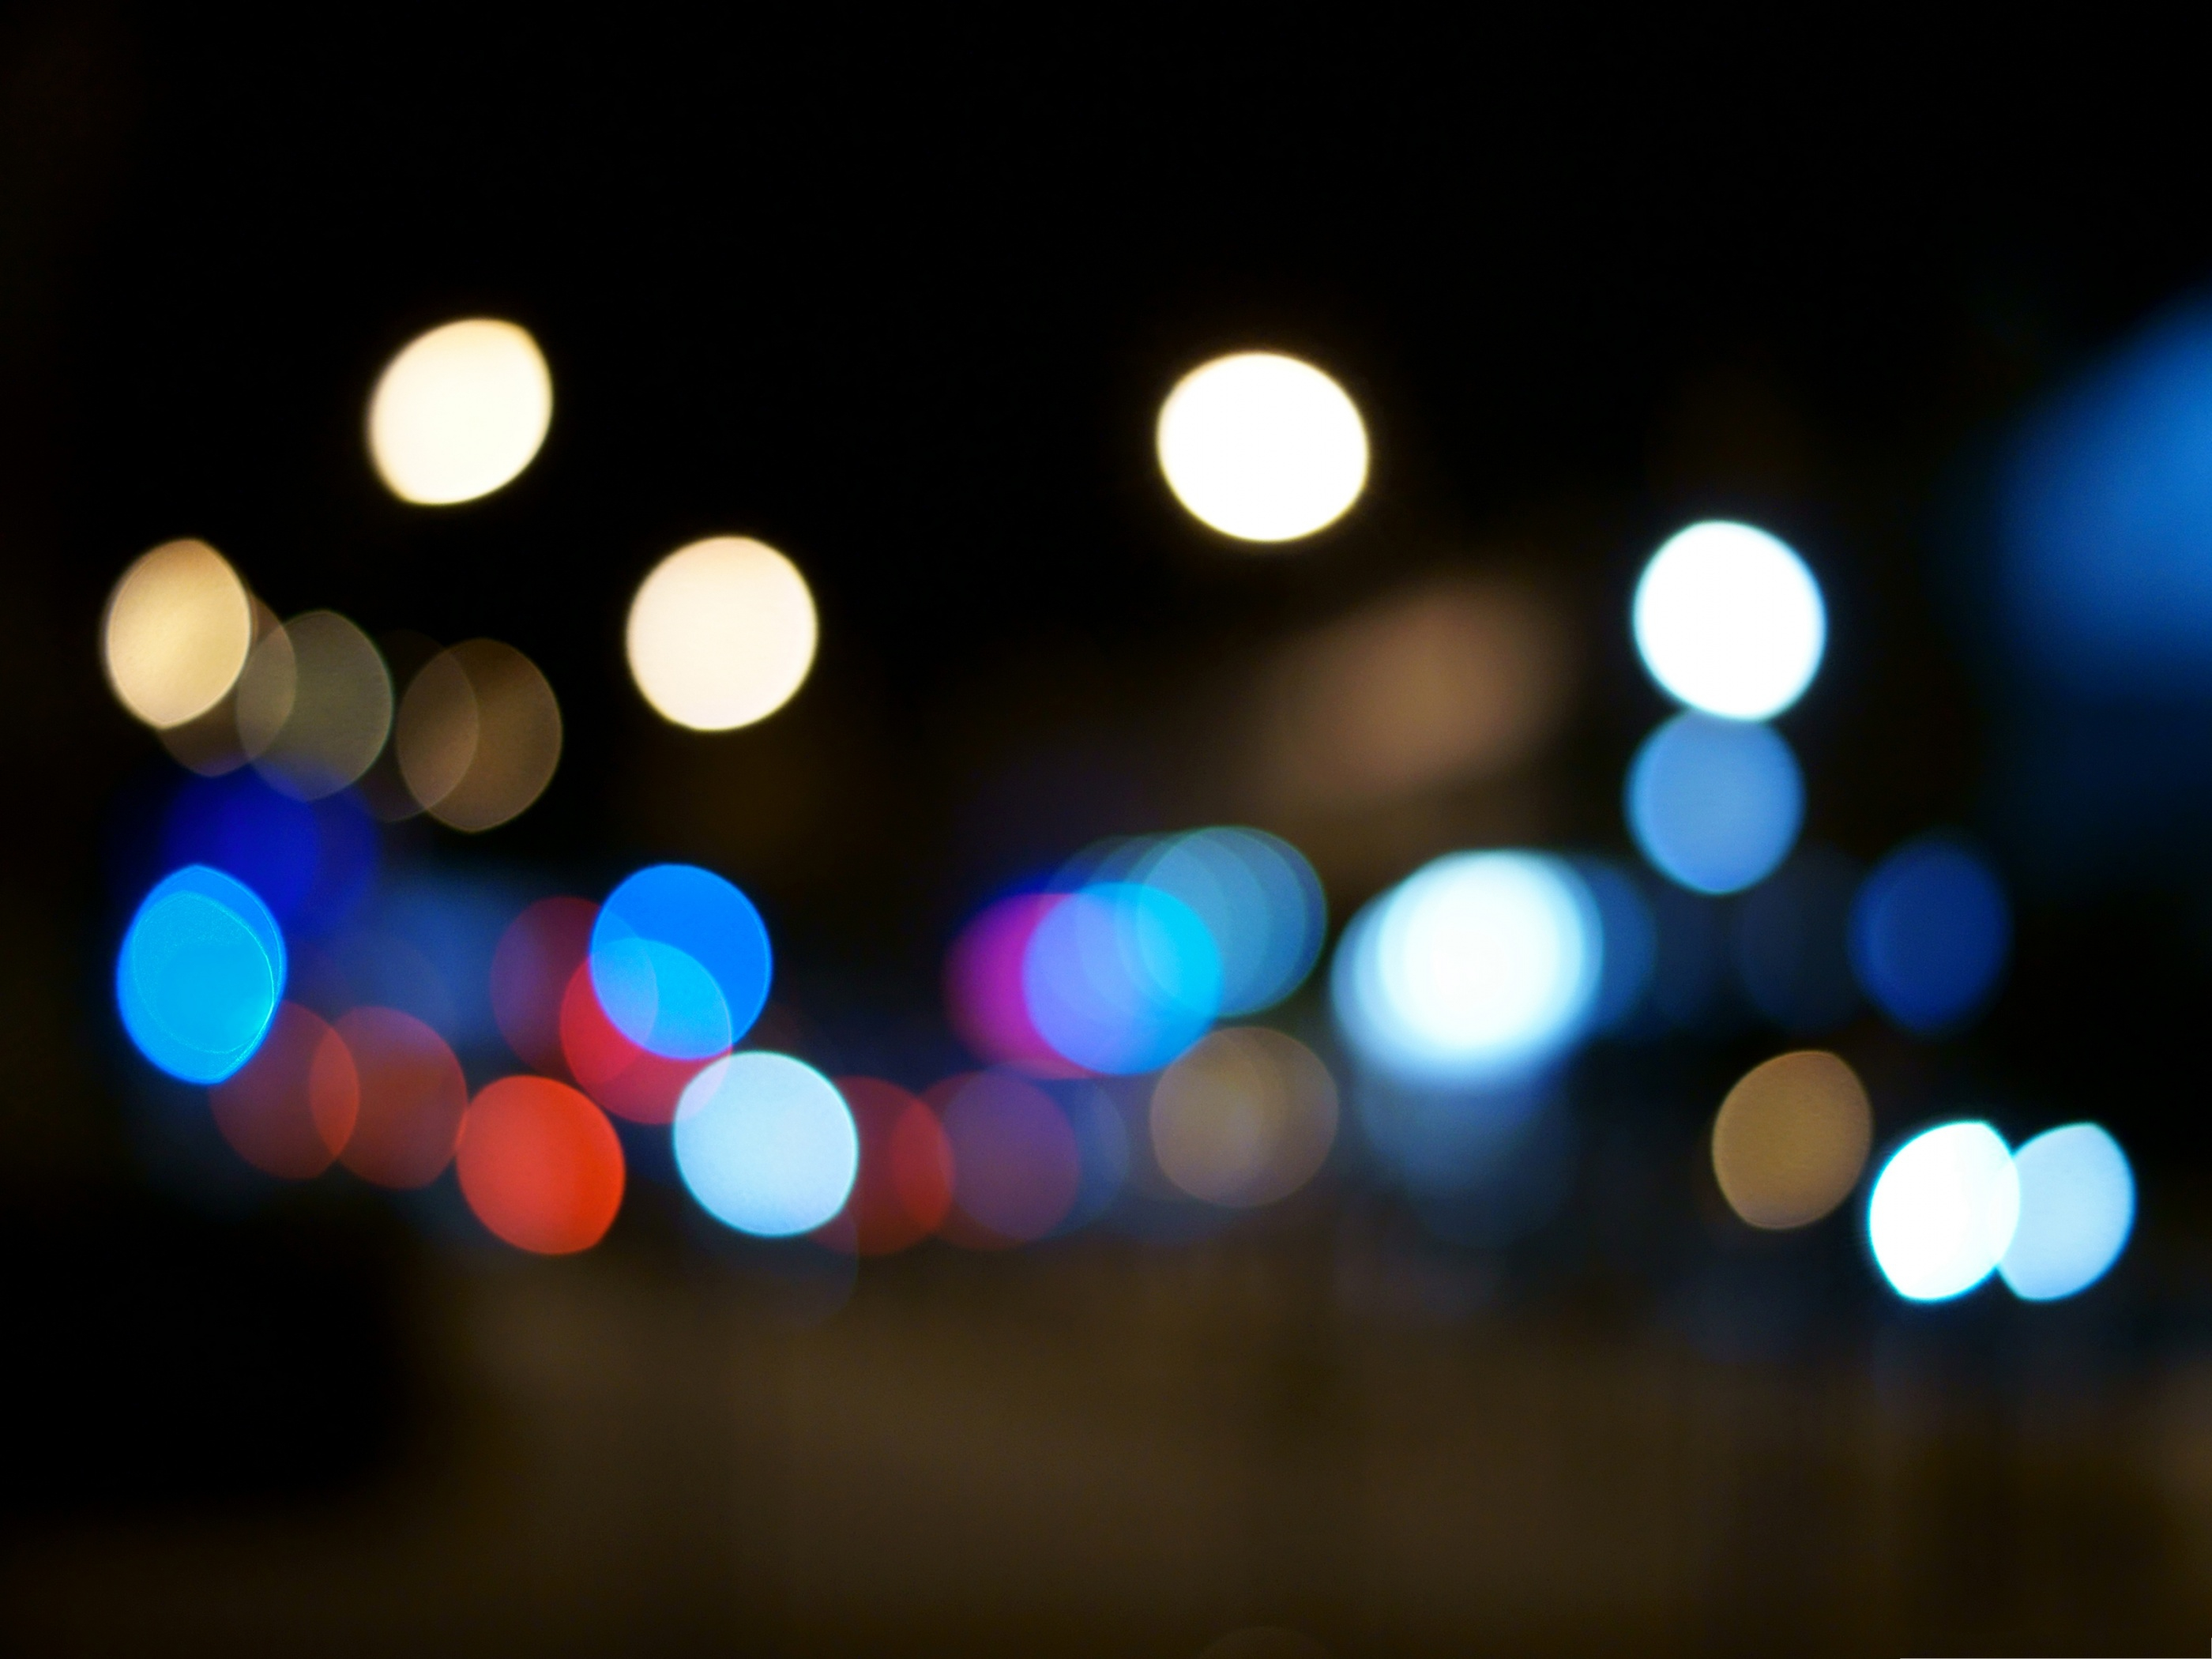 Fresh Bokeh High Quality Wallpaper Download Bokeh: High Quality Wide Wallpaper